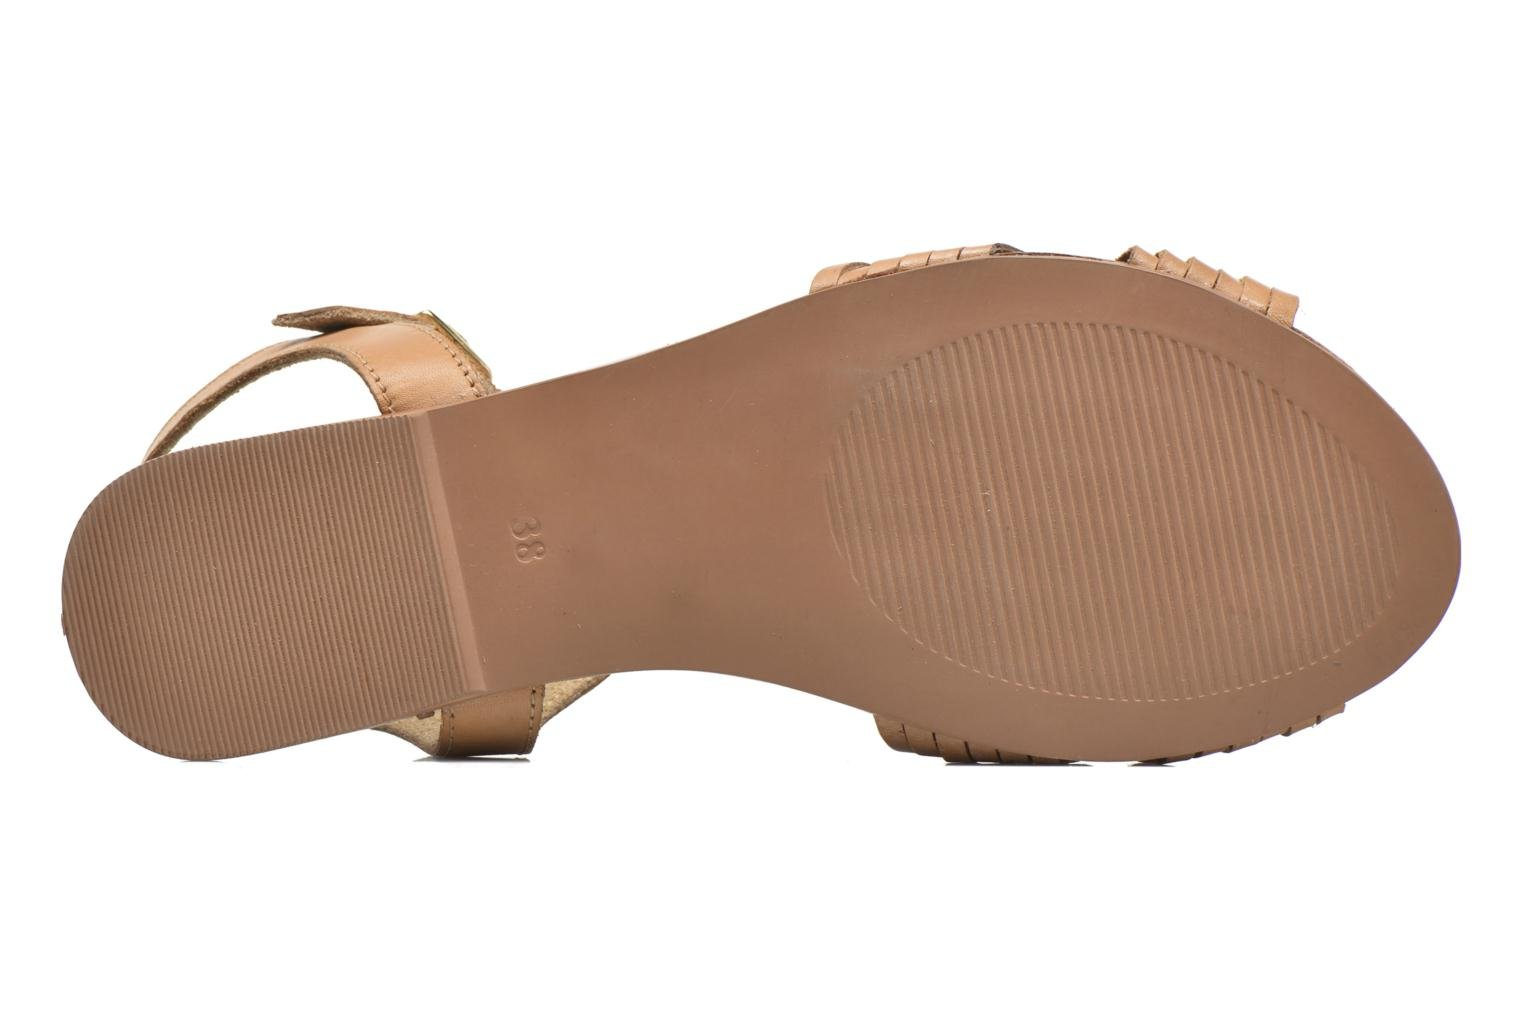 KETRES Leather Natural